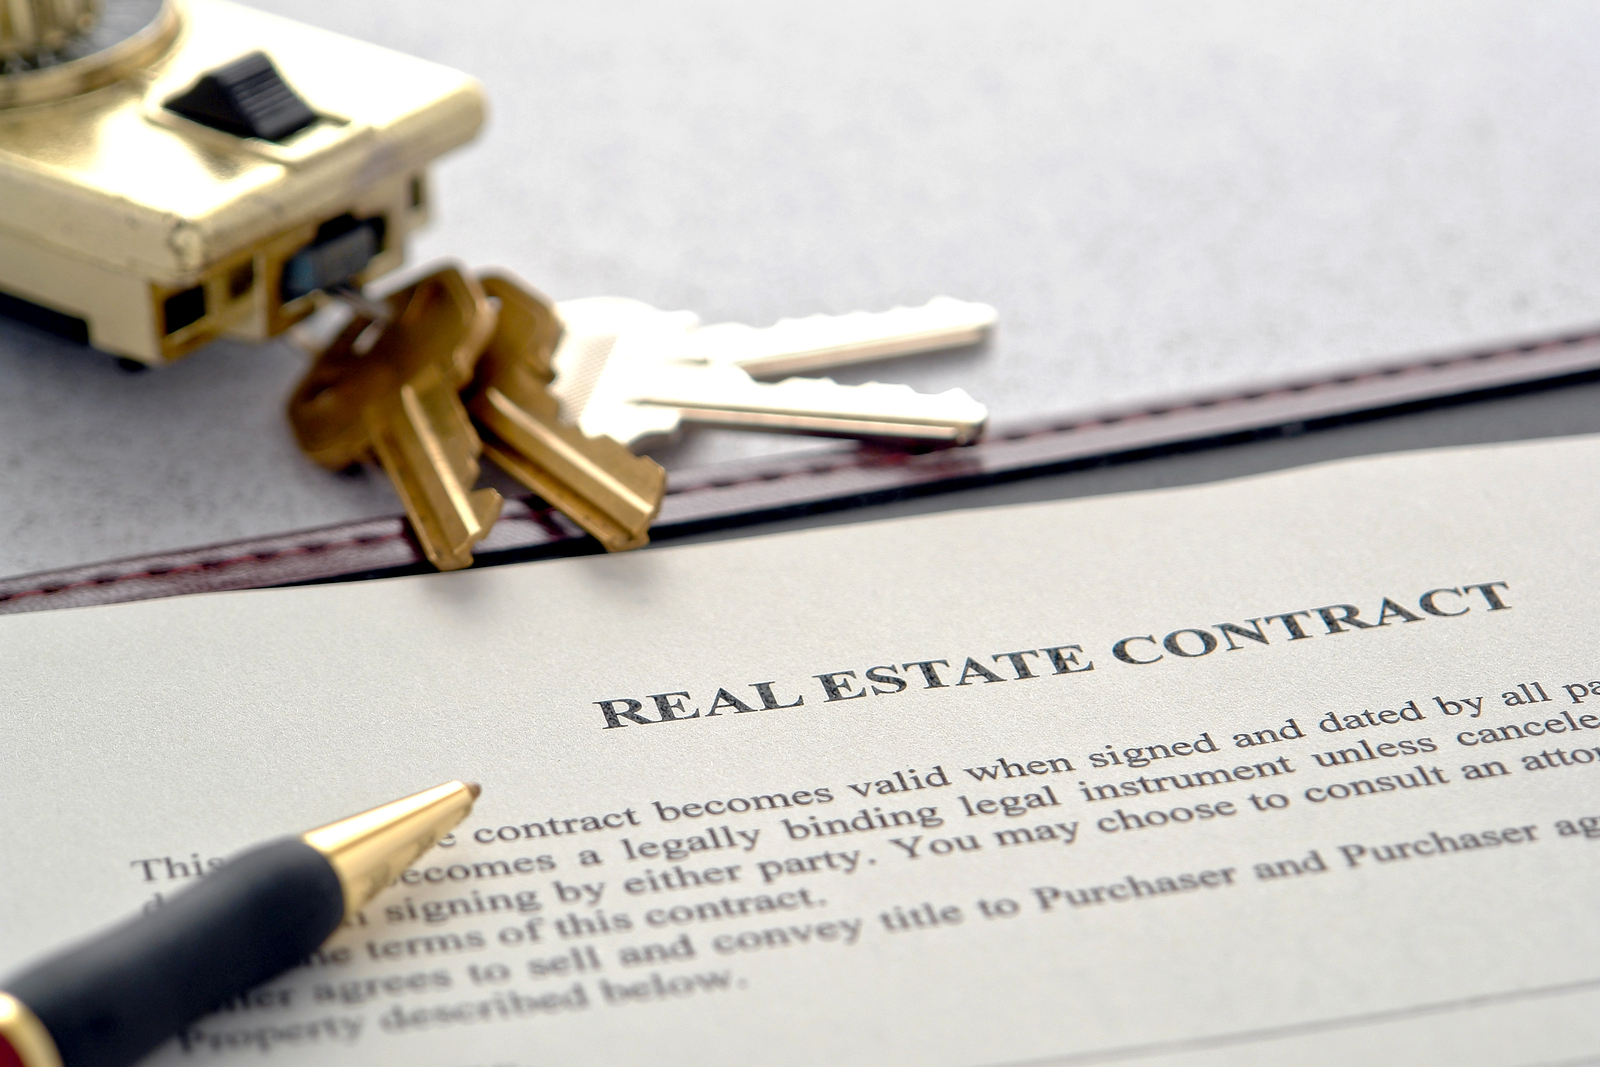 What happens after I sign the listing agreement?